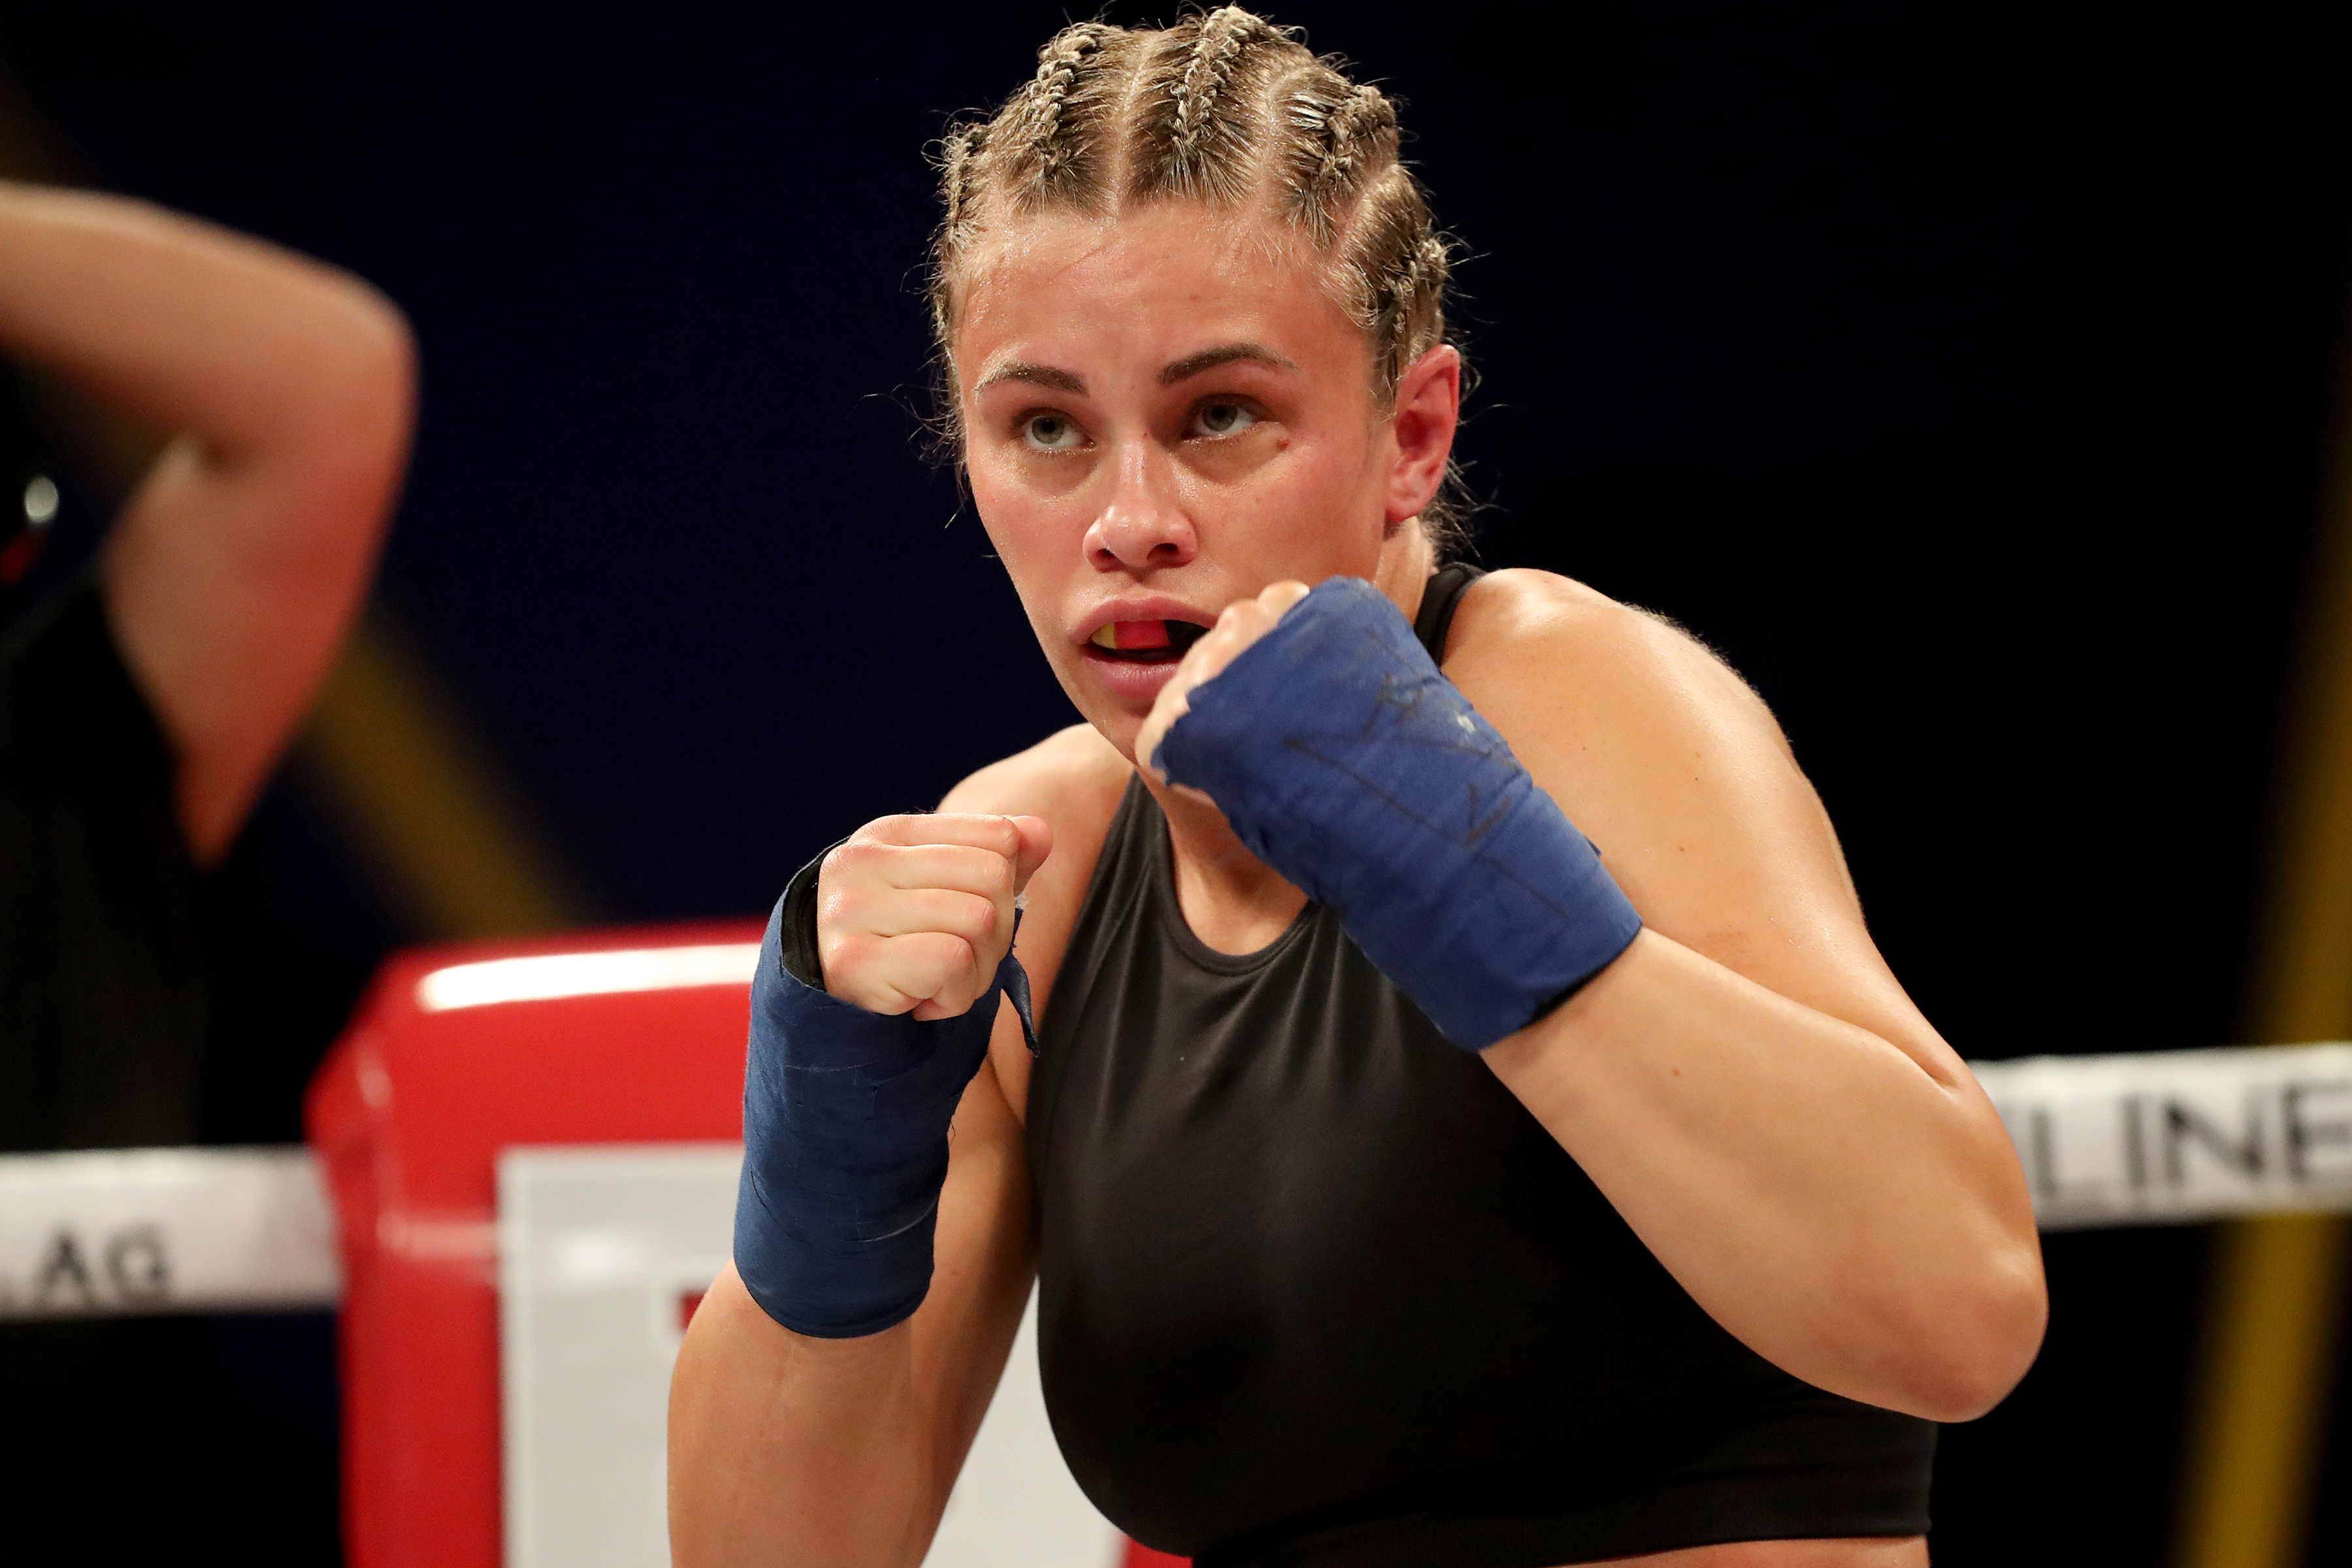 Paige VanZant during her fight with Britain Hart at BKFC: KnuckleMania earlier this year.